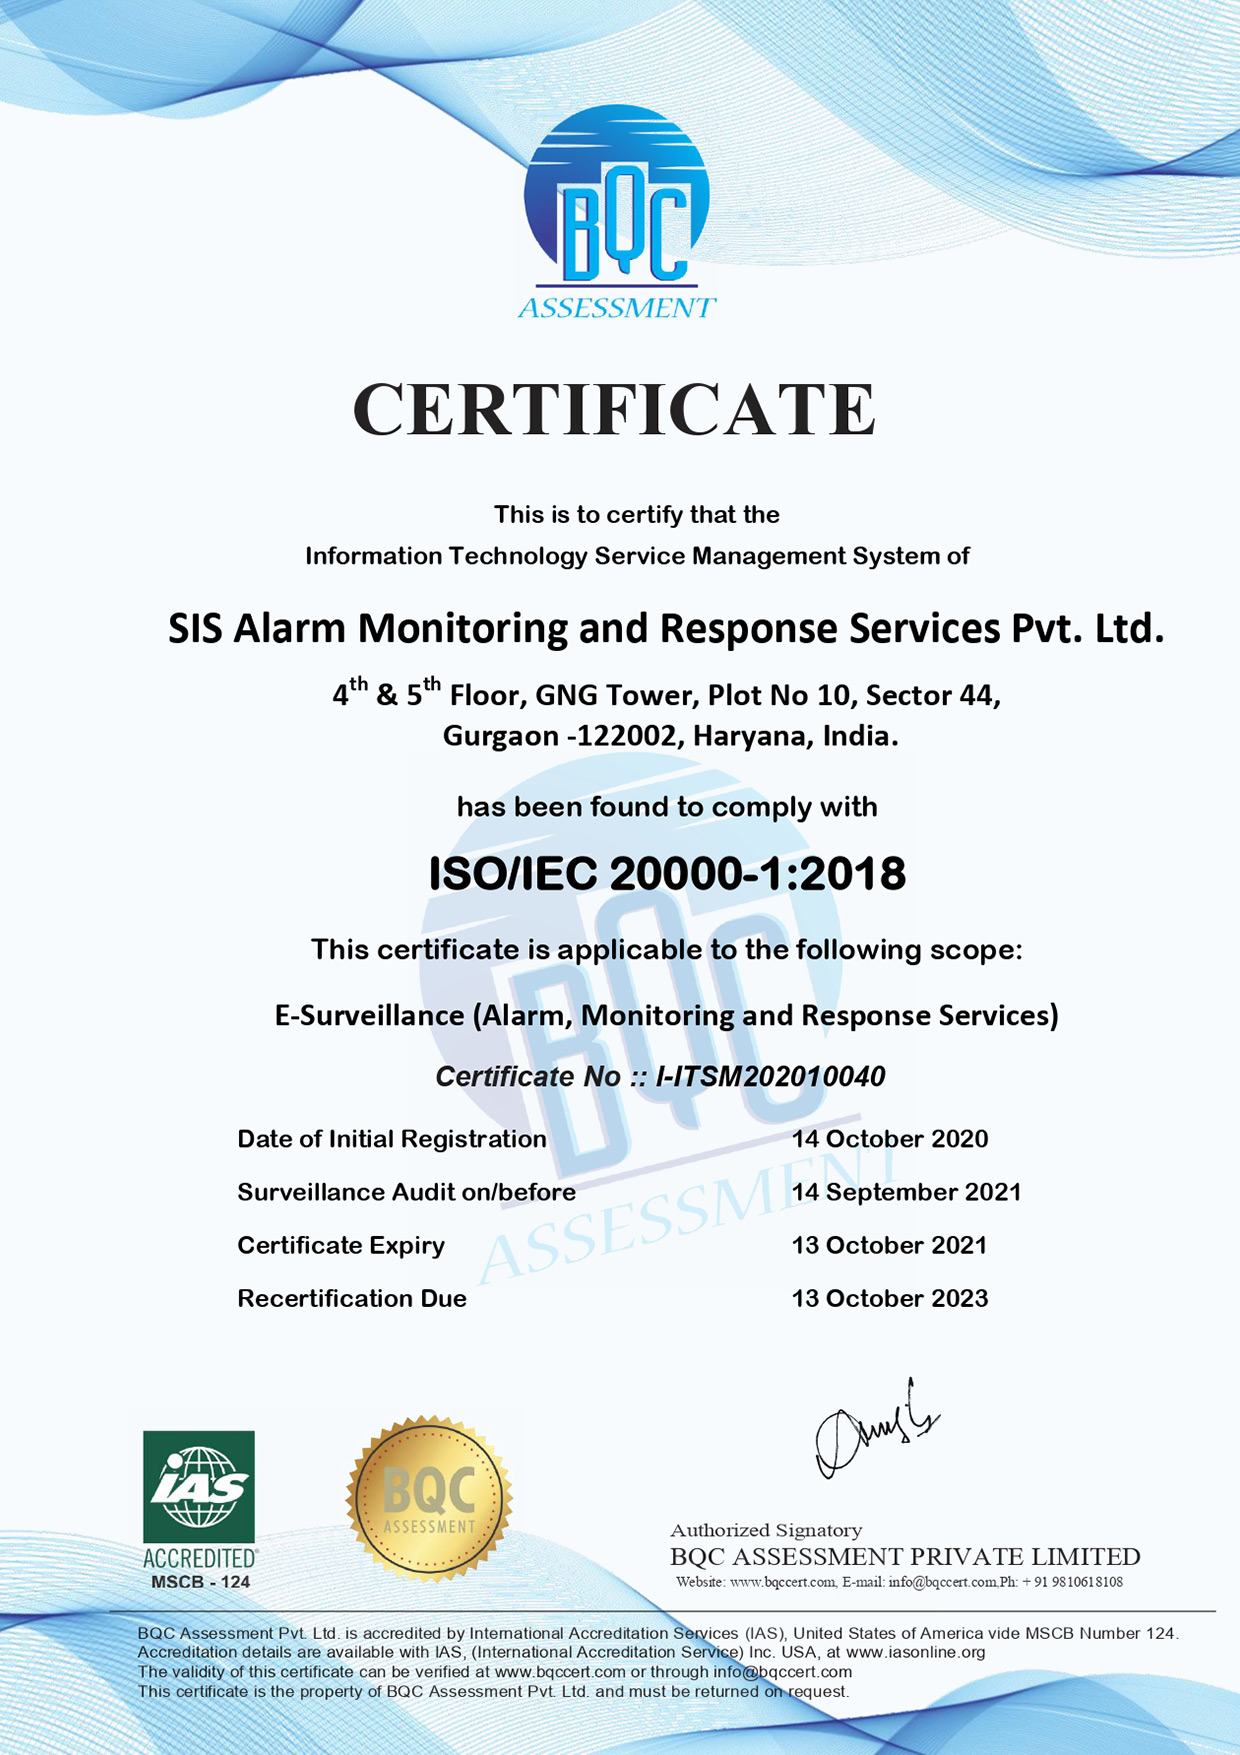 VProtect - ISO/IEC 20000-1:2018